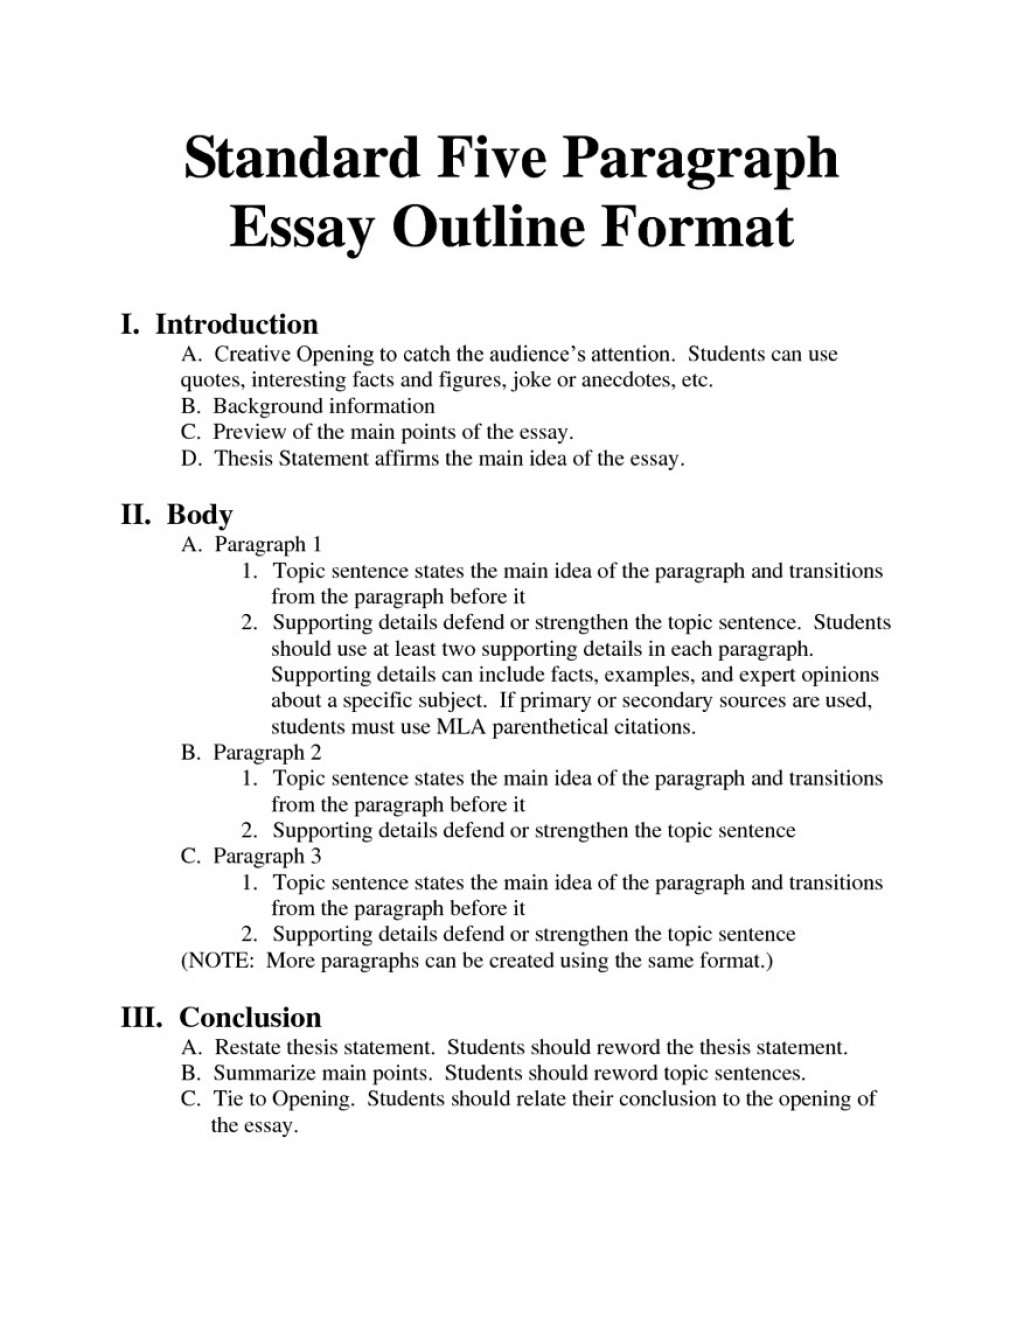 005 Essay Example Incredible 1984 Topics Stasiland George Orwell Research Paper Book Questions Large